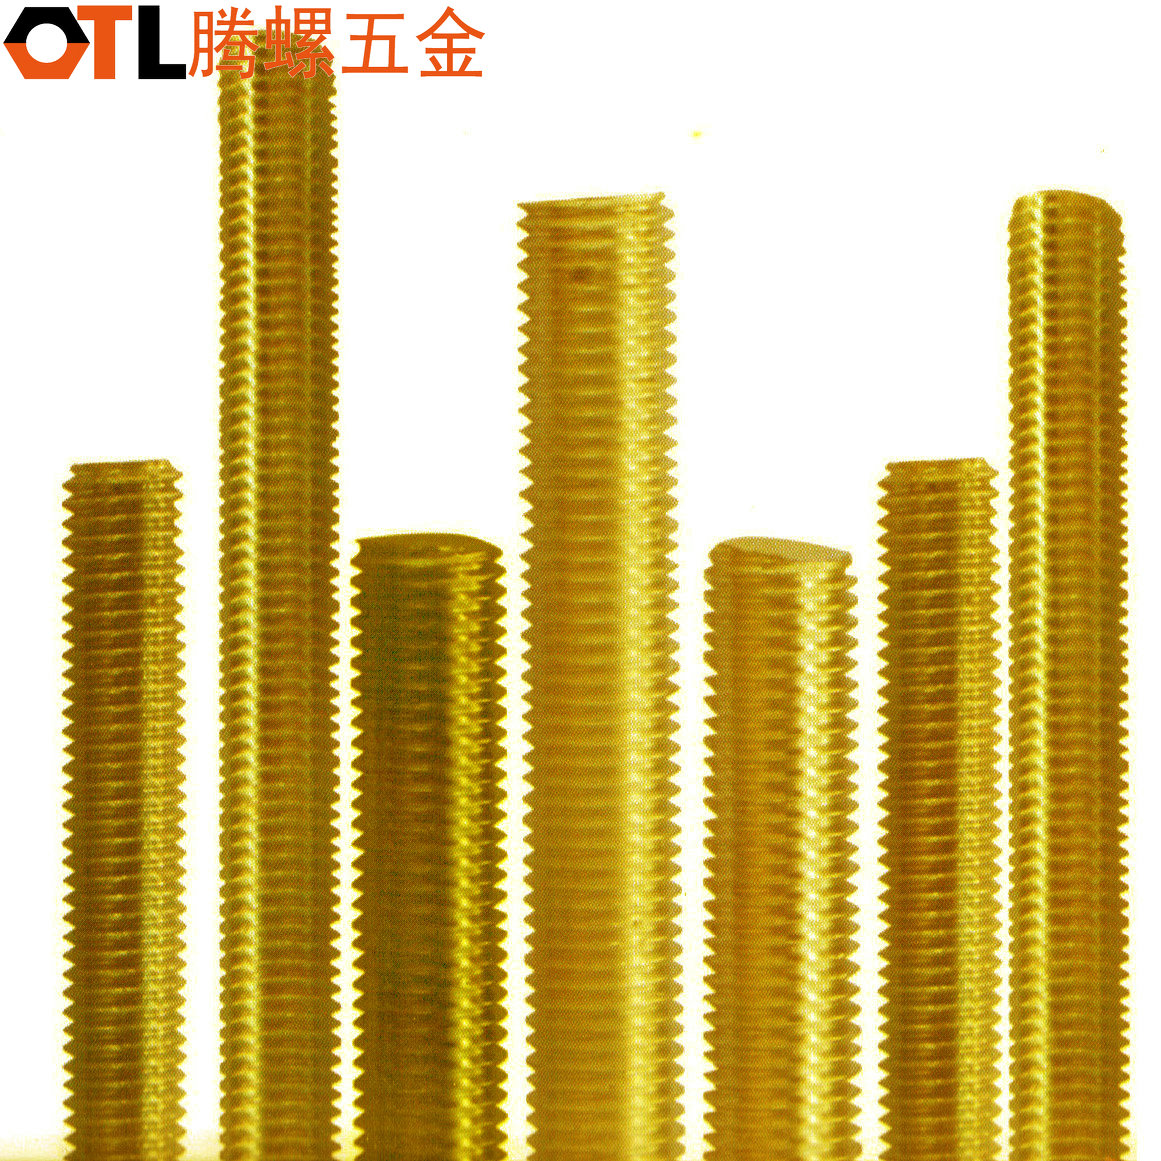 Brass screw stud 1 m long screw teeth rods h59 copper threaded rods complete specifications m6-m16